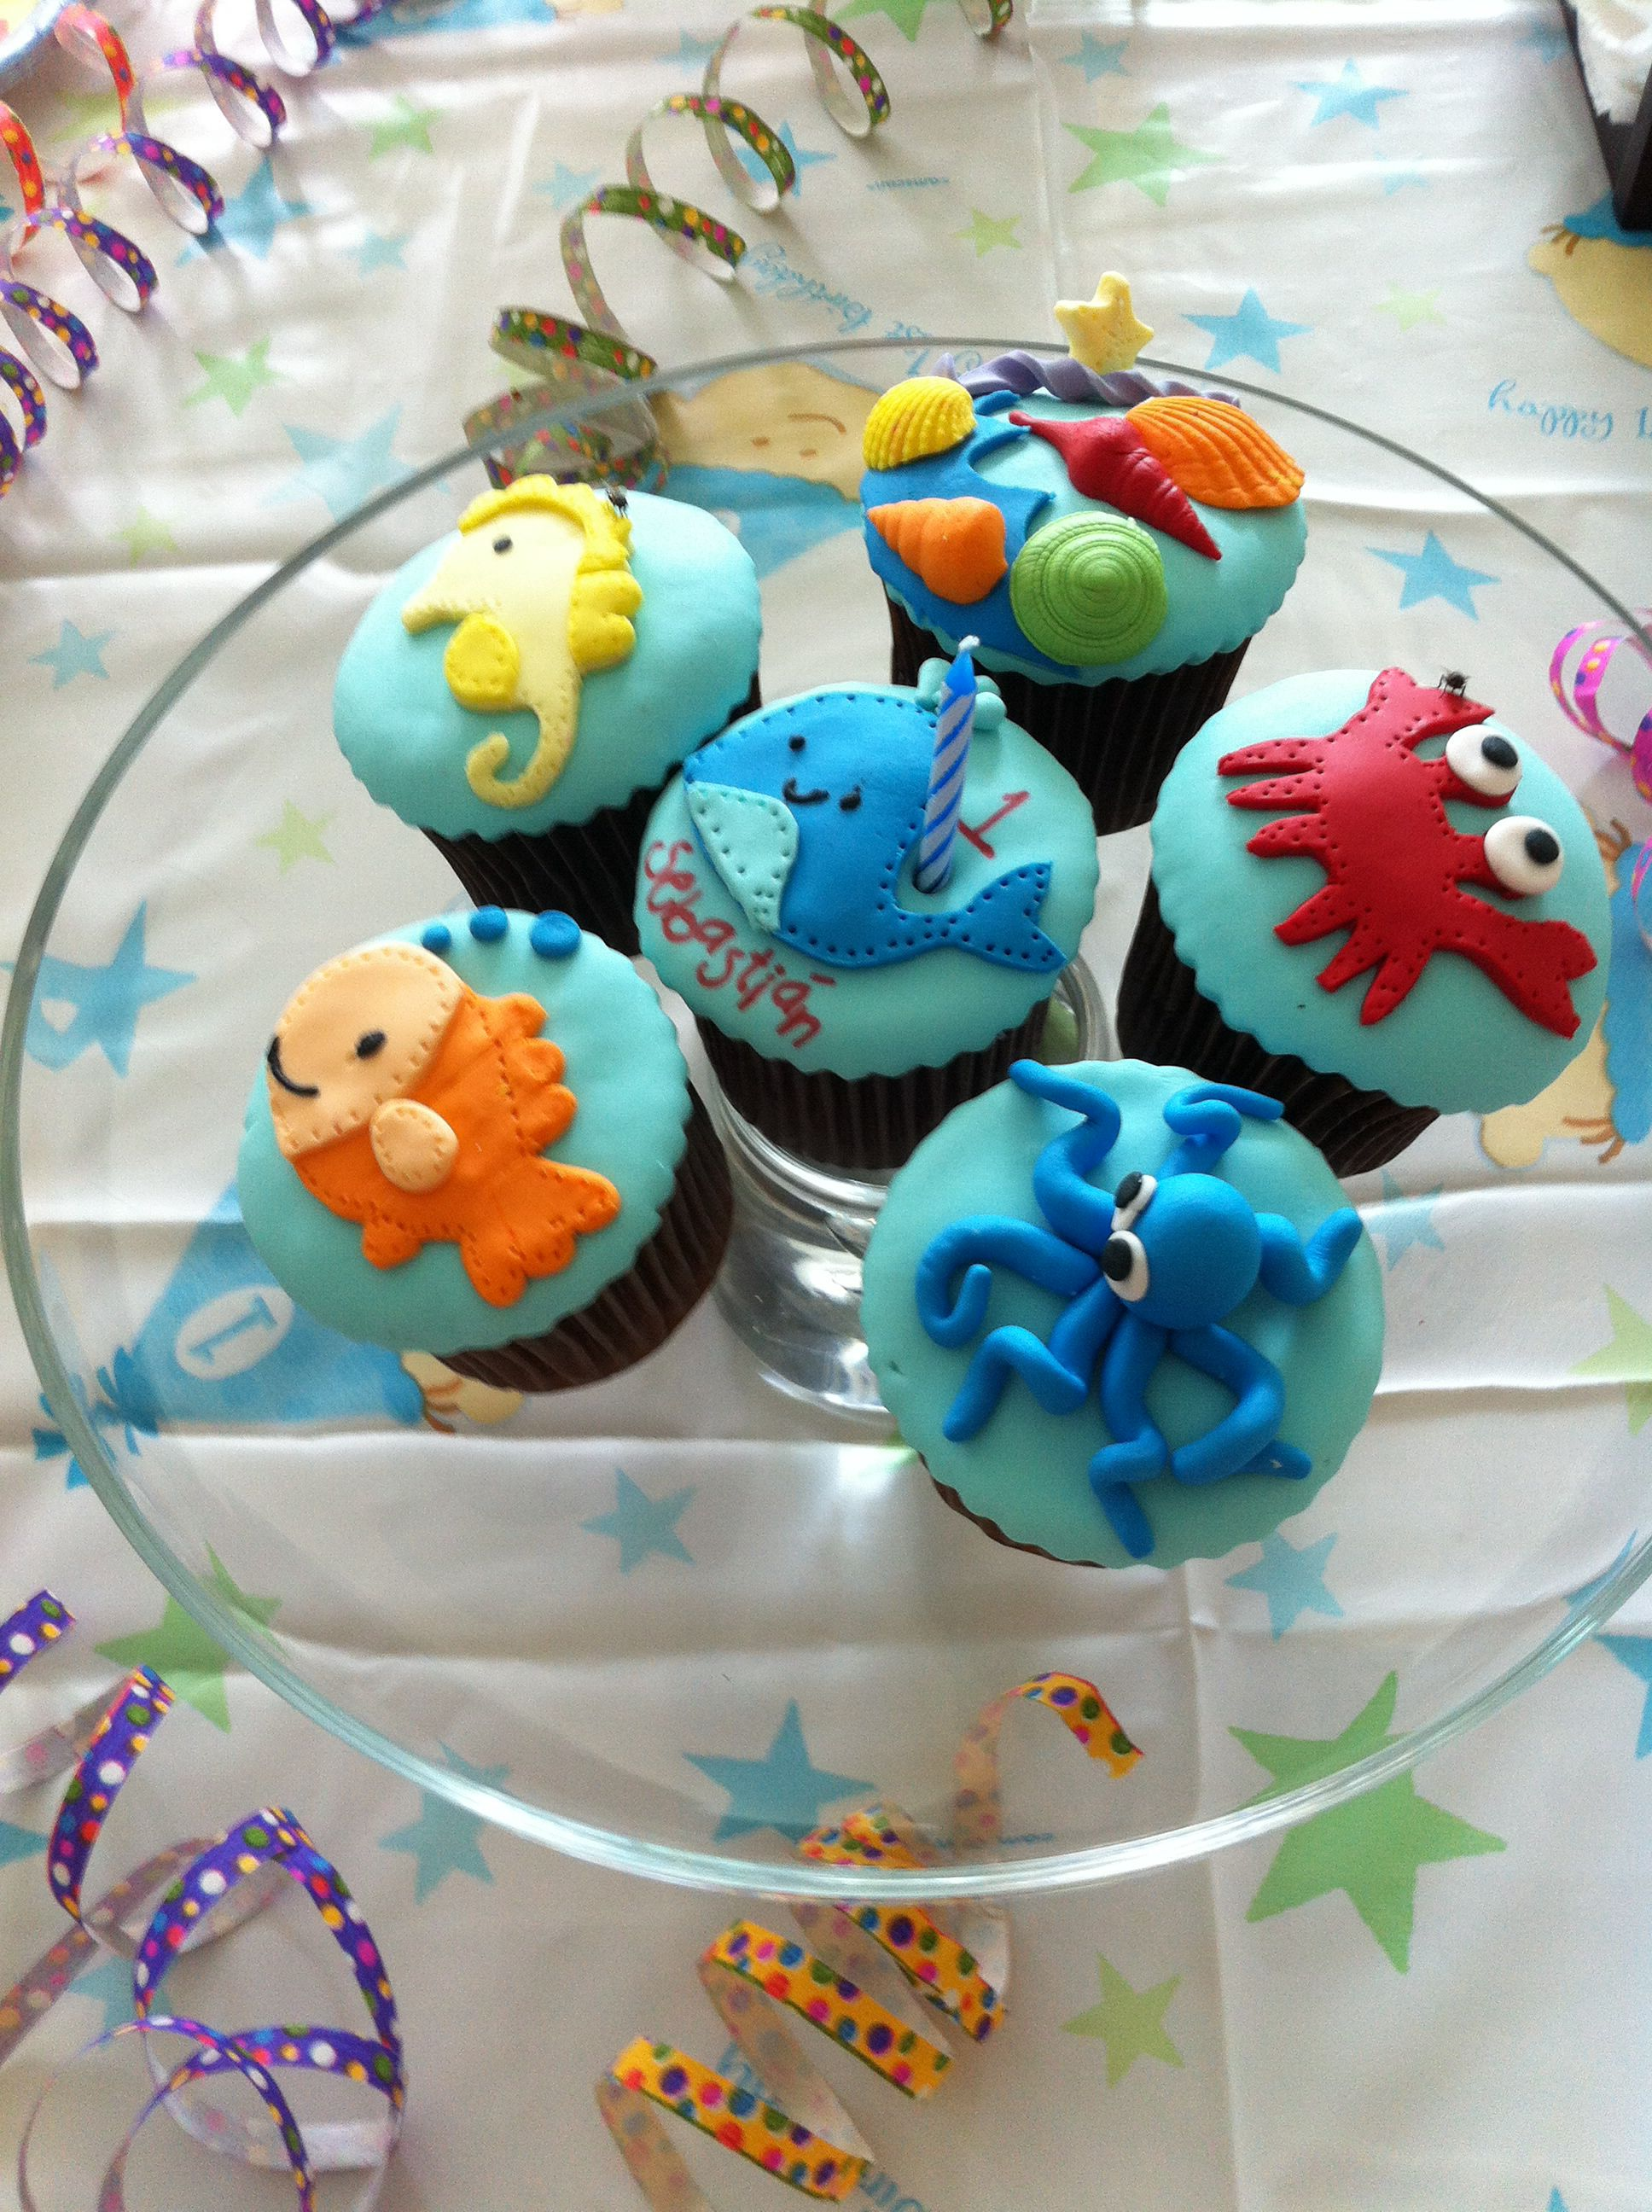 Loved my son's 1st bday cup cakes